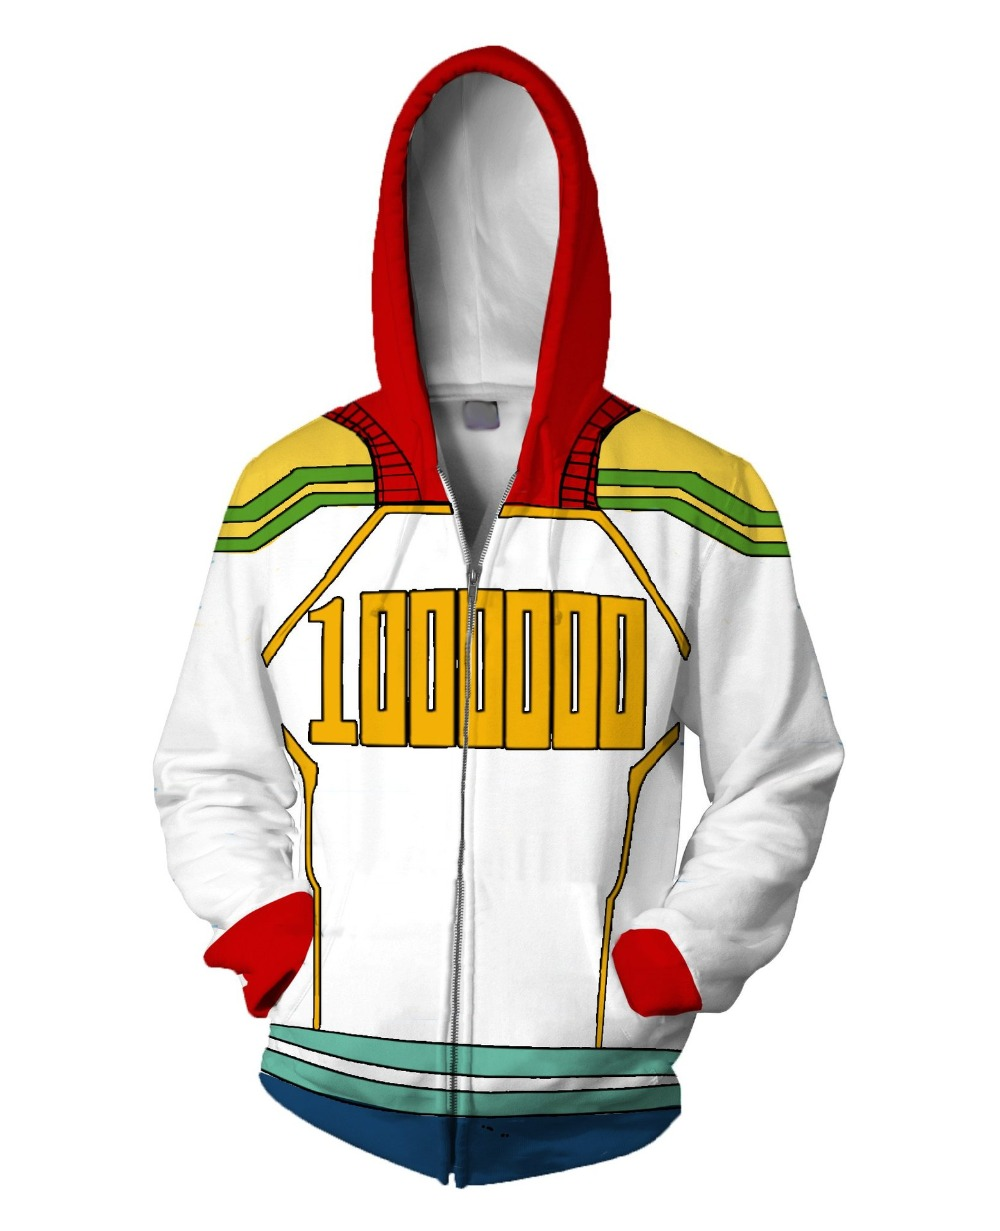 My Hero Academia All Roles Gym Suit Sports Wear Outfit <font><b>mirio</b></font> Hoodies <font><b>Cosplay</b></font> Costumes Fashion 3D zipper Hoodie Sweatshirts image